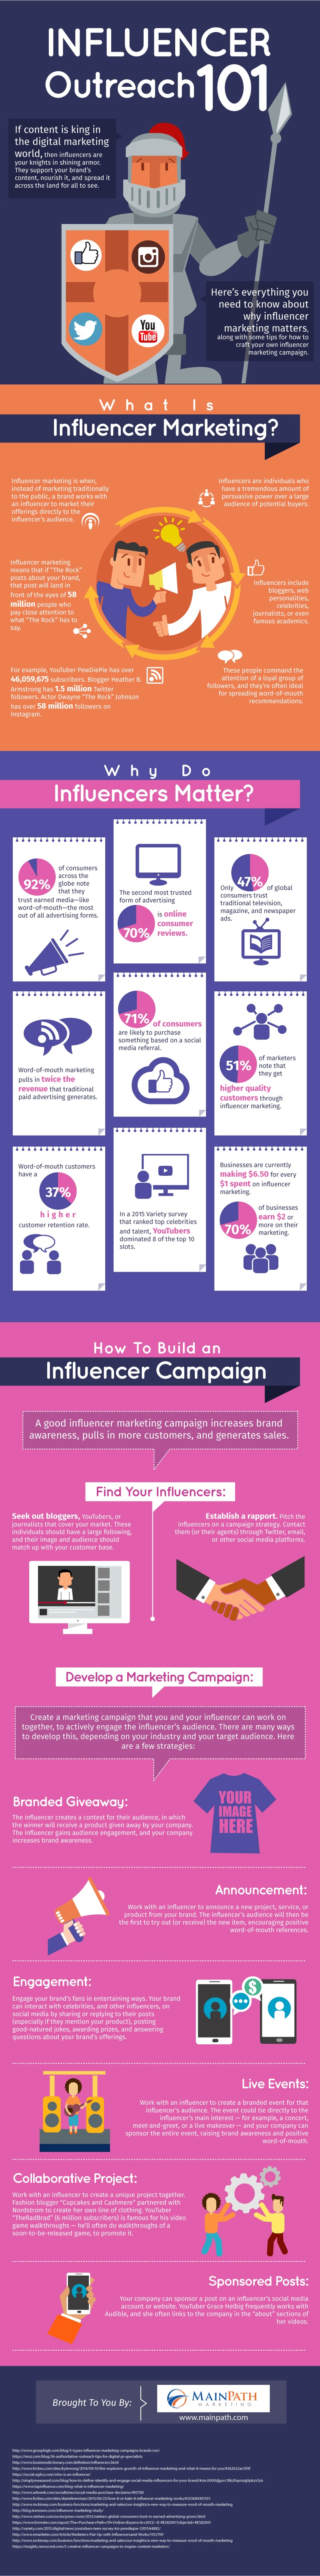 Influencer Outreach 101 - #infographic